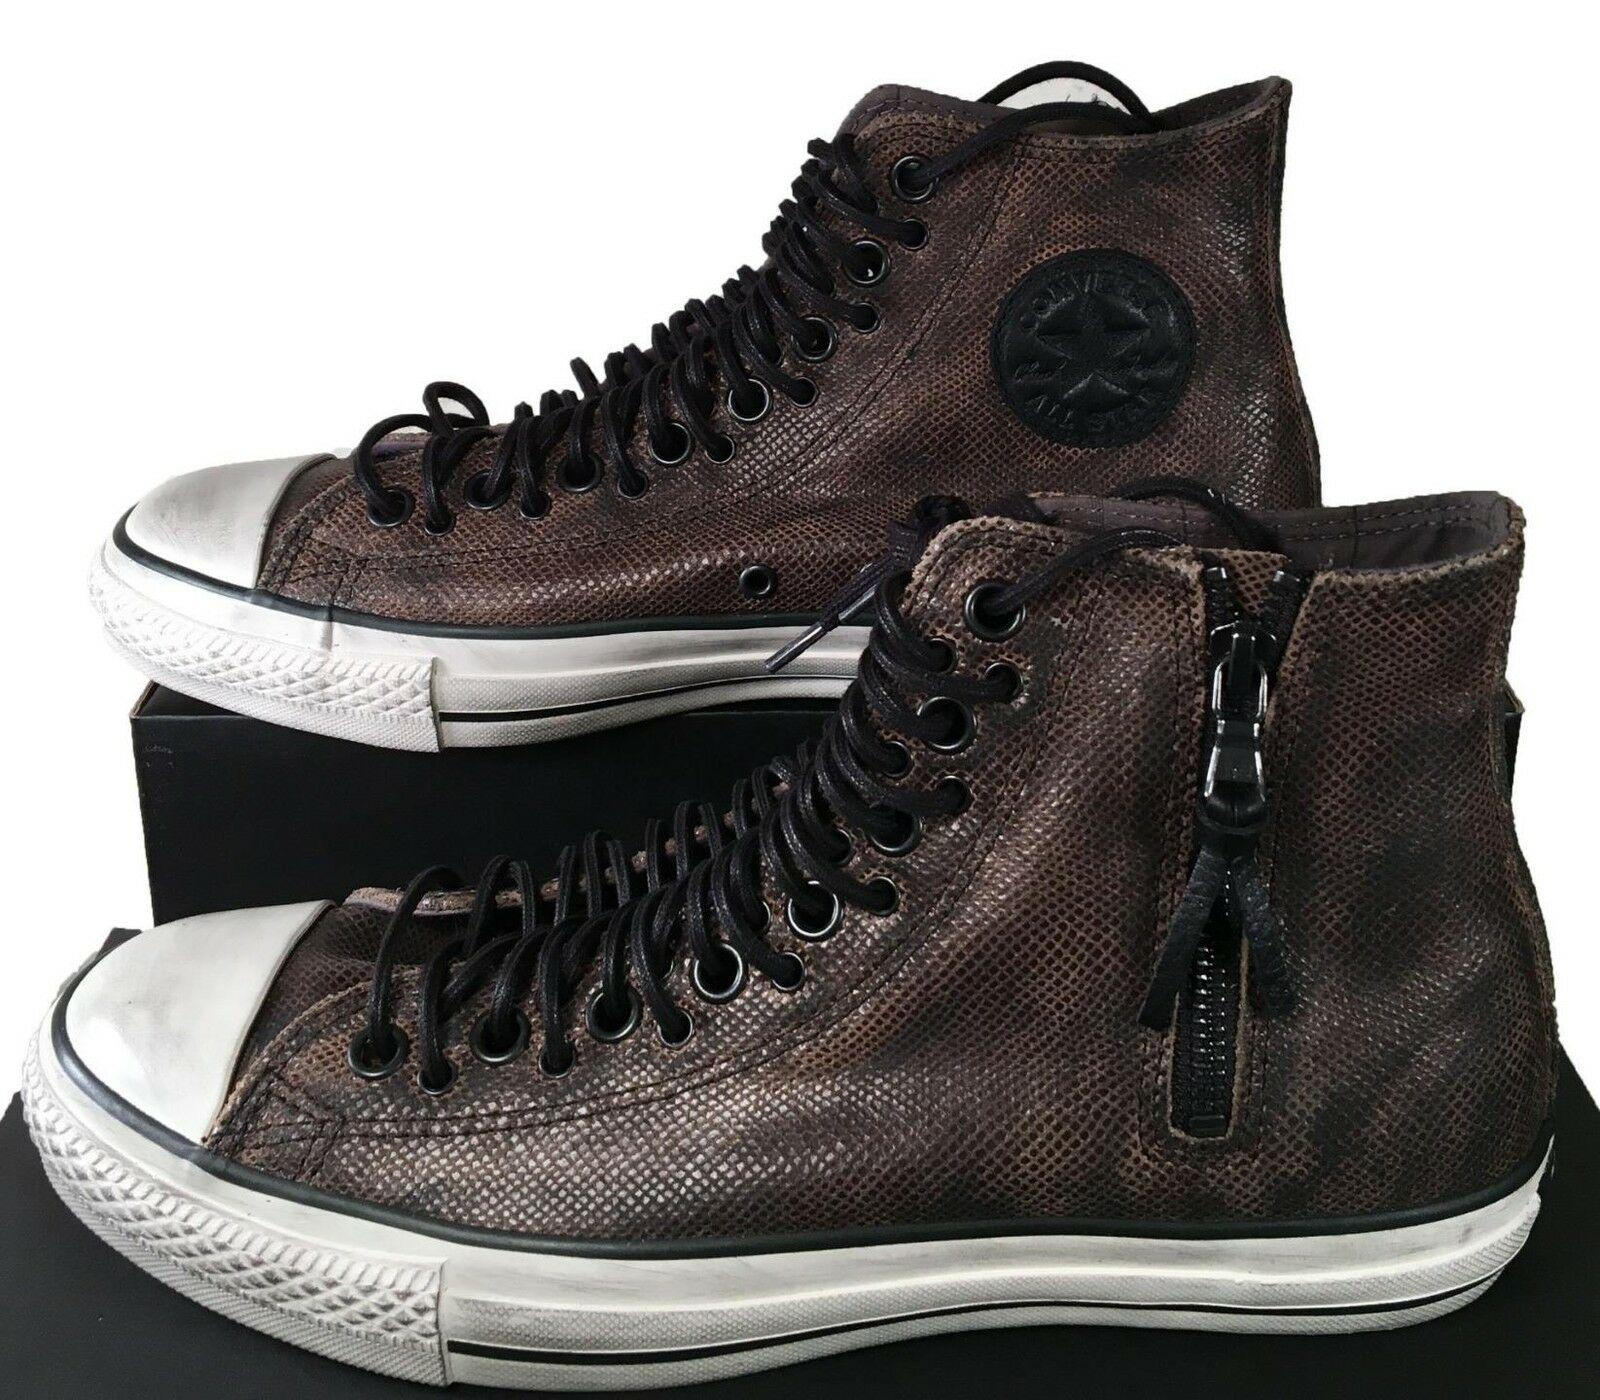 Converse by John Varvatos Chuck Taylor Multi Lace Brown Leather Sneaker  150165C 83493d37db